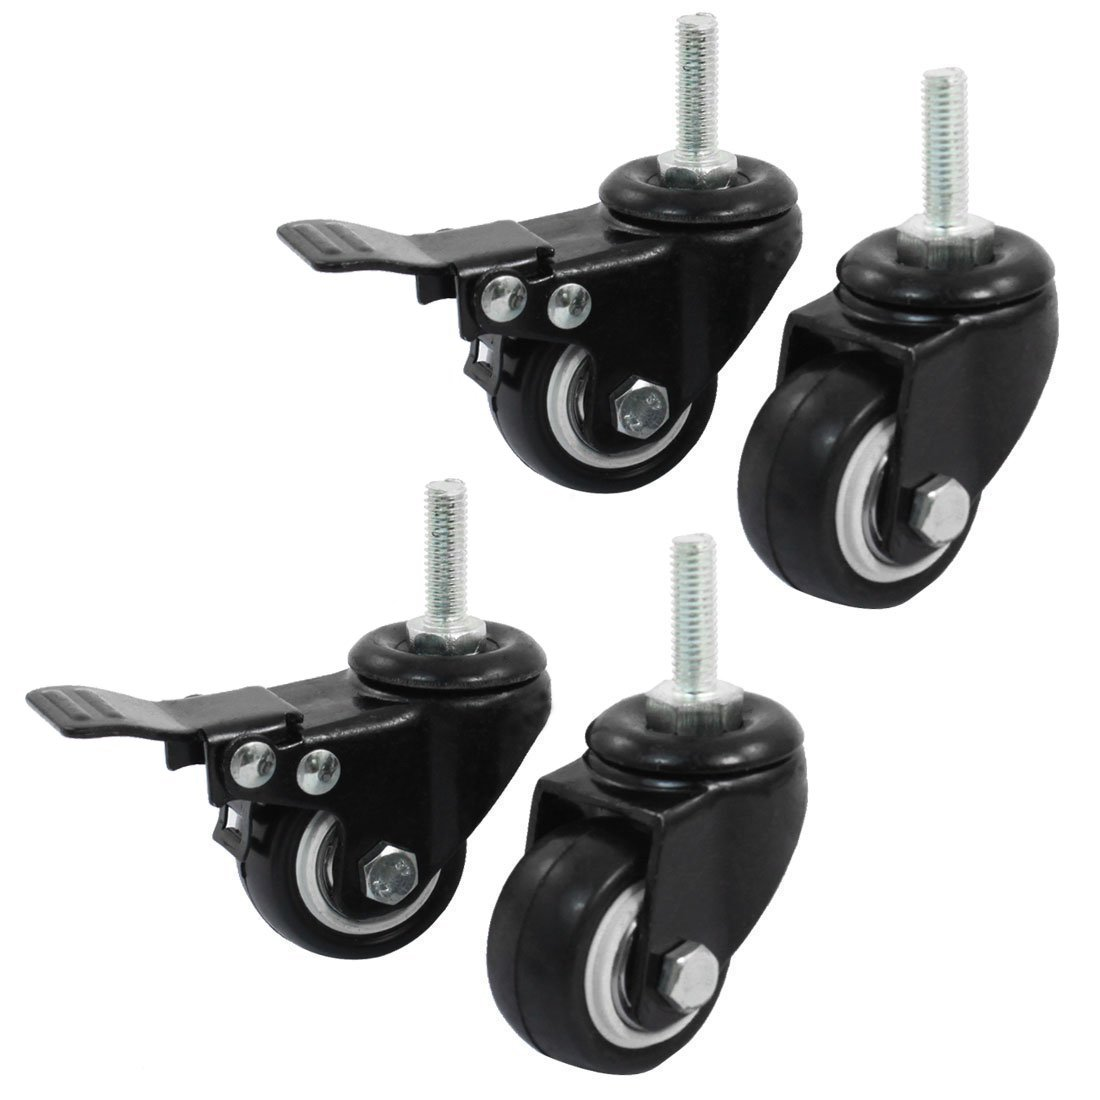 RilexAwhile 4 Pcs Black 1.5'' Caster Set 2 Swivel 2 Rotary Brake for Shopping Carts, Hand Trolley, Tools, Small Equipment Etc. (1.5'')